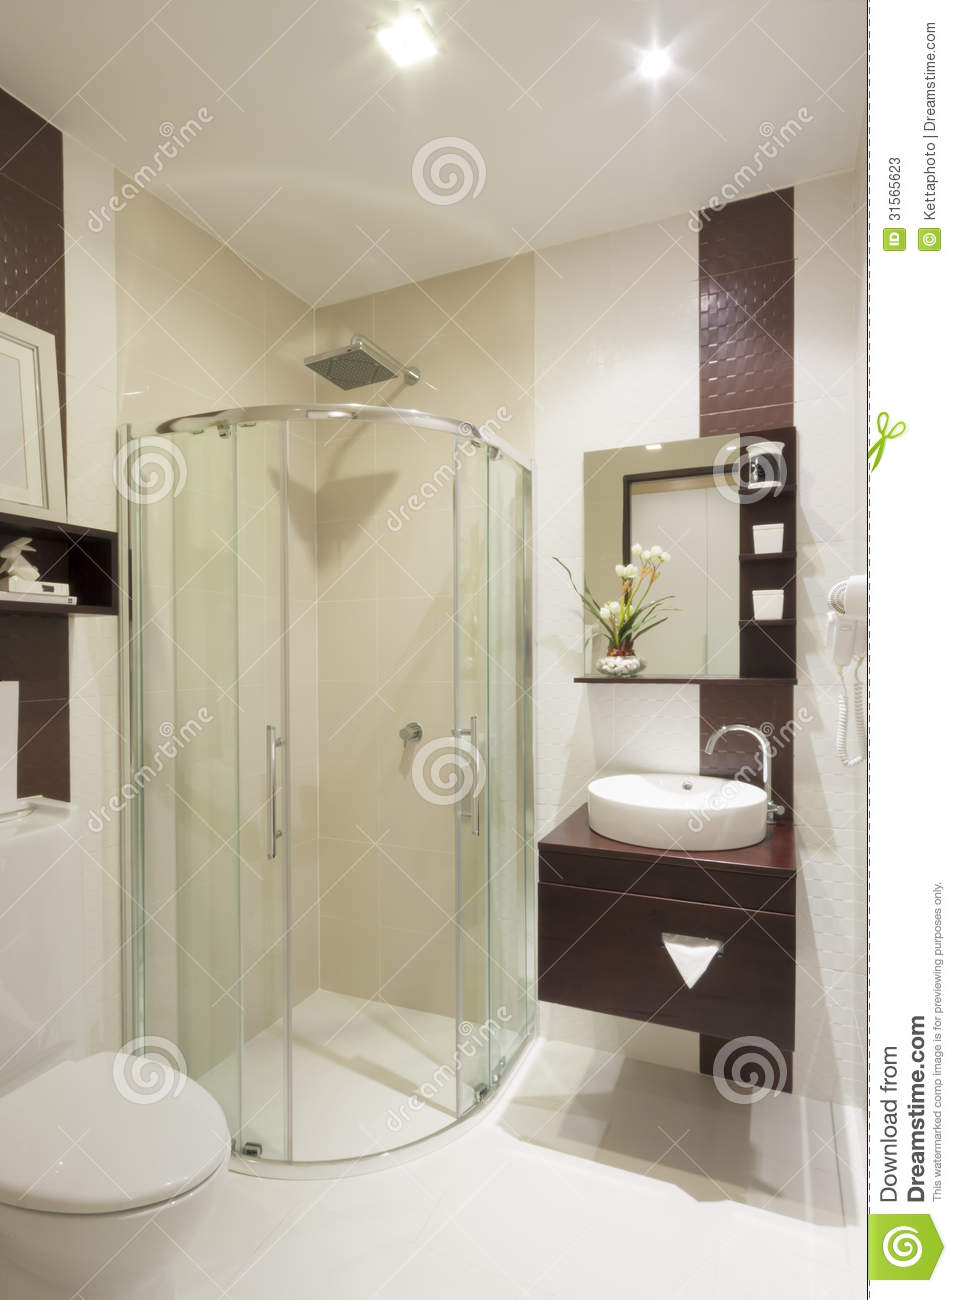 Baño De Lujo Pequeno:Small Luxury Hotel Bathroom